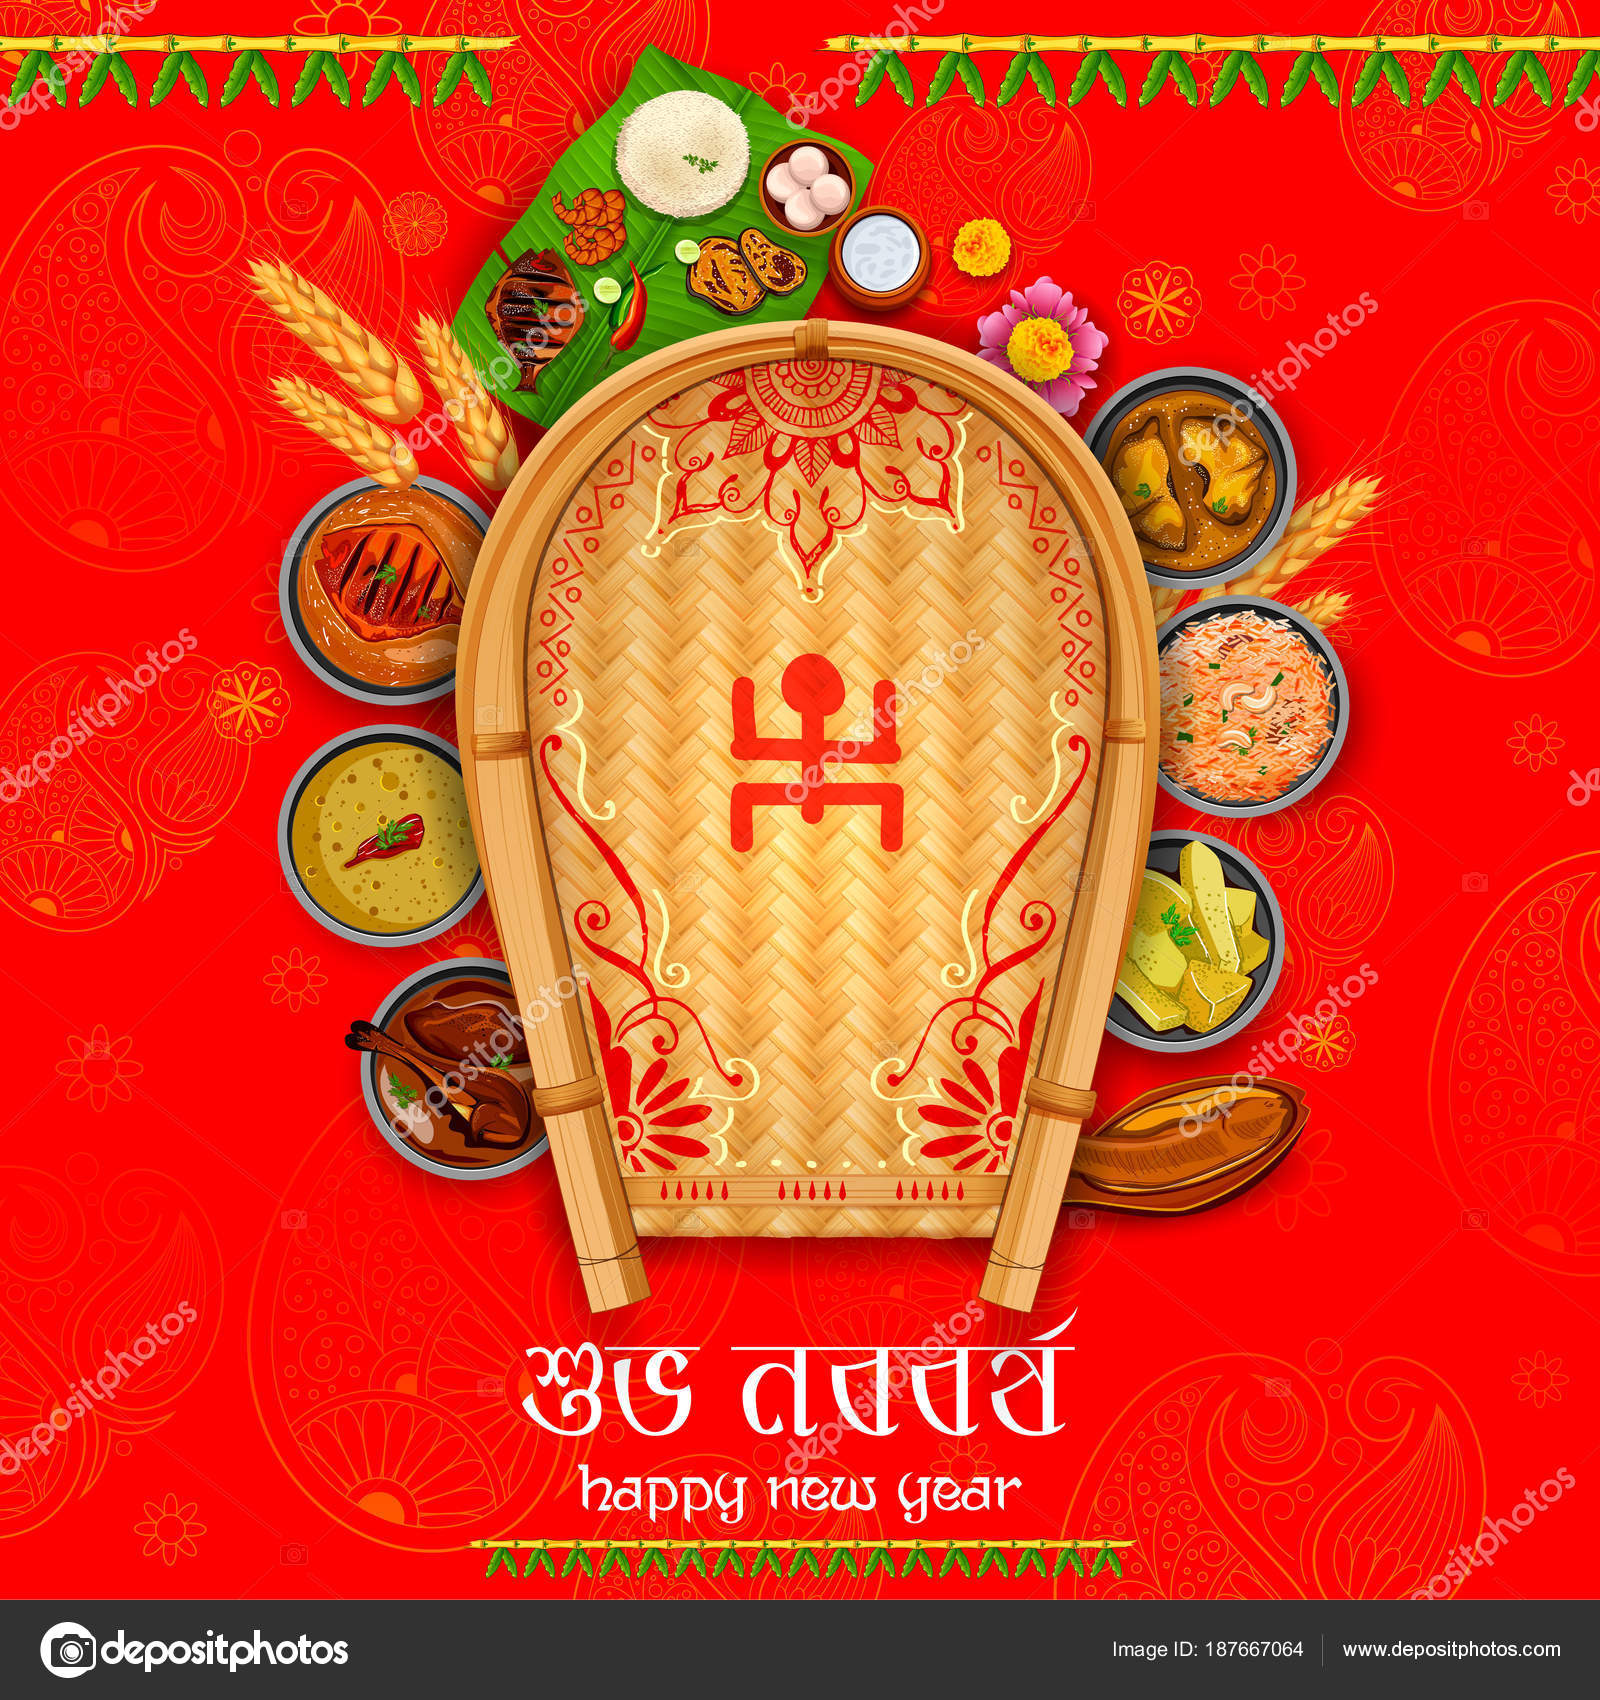 Greeting background with bengali text subho nababarsho meaning happy greeting background with bengali text subho nababarsho meaning happy new year stock vector stopboris Choice Image